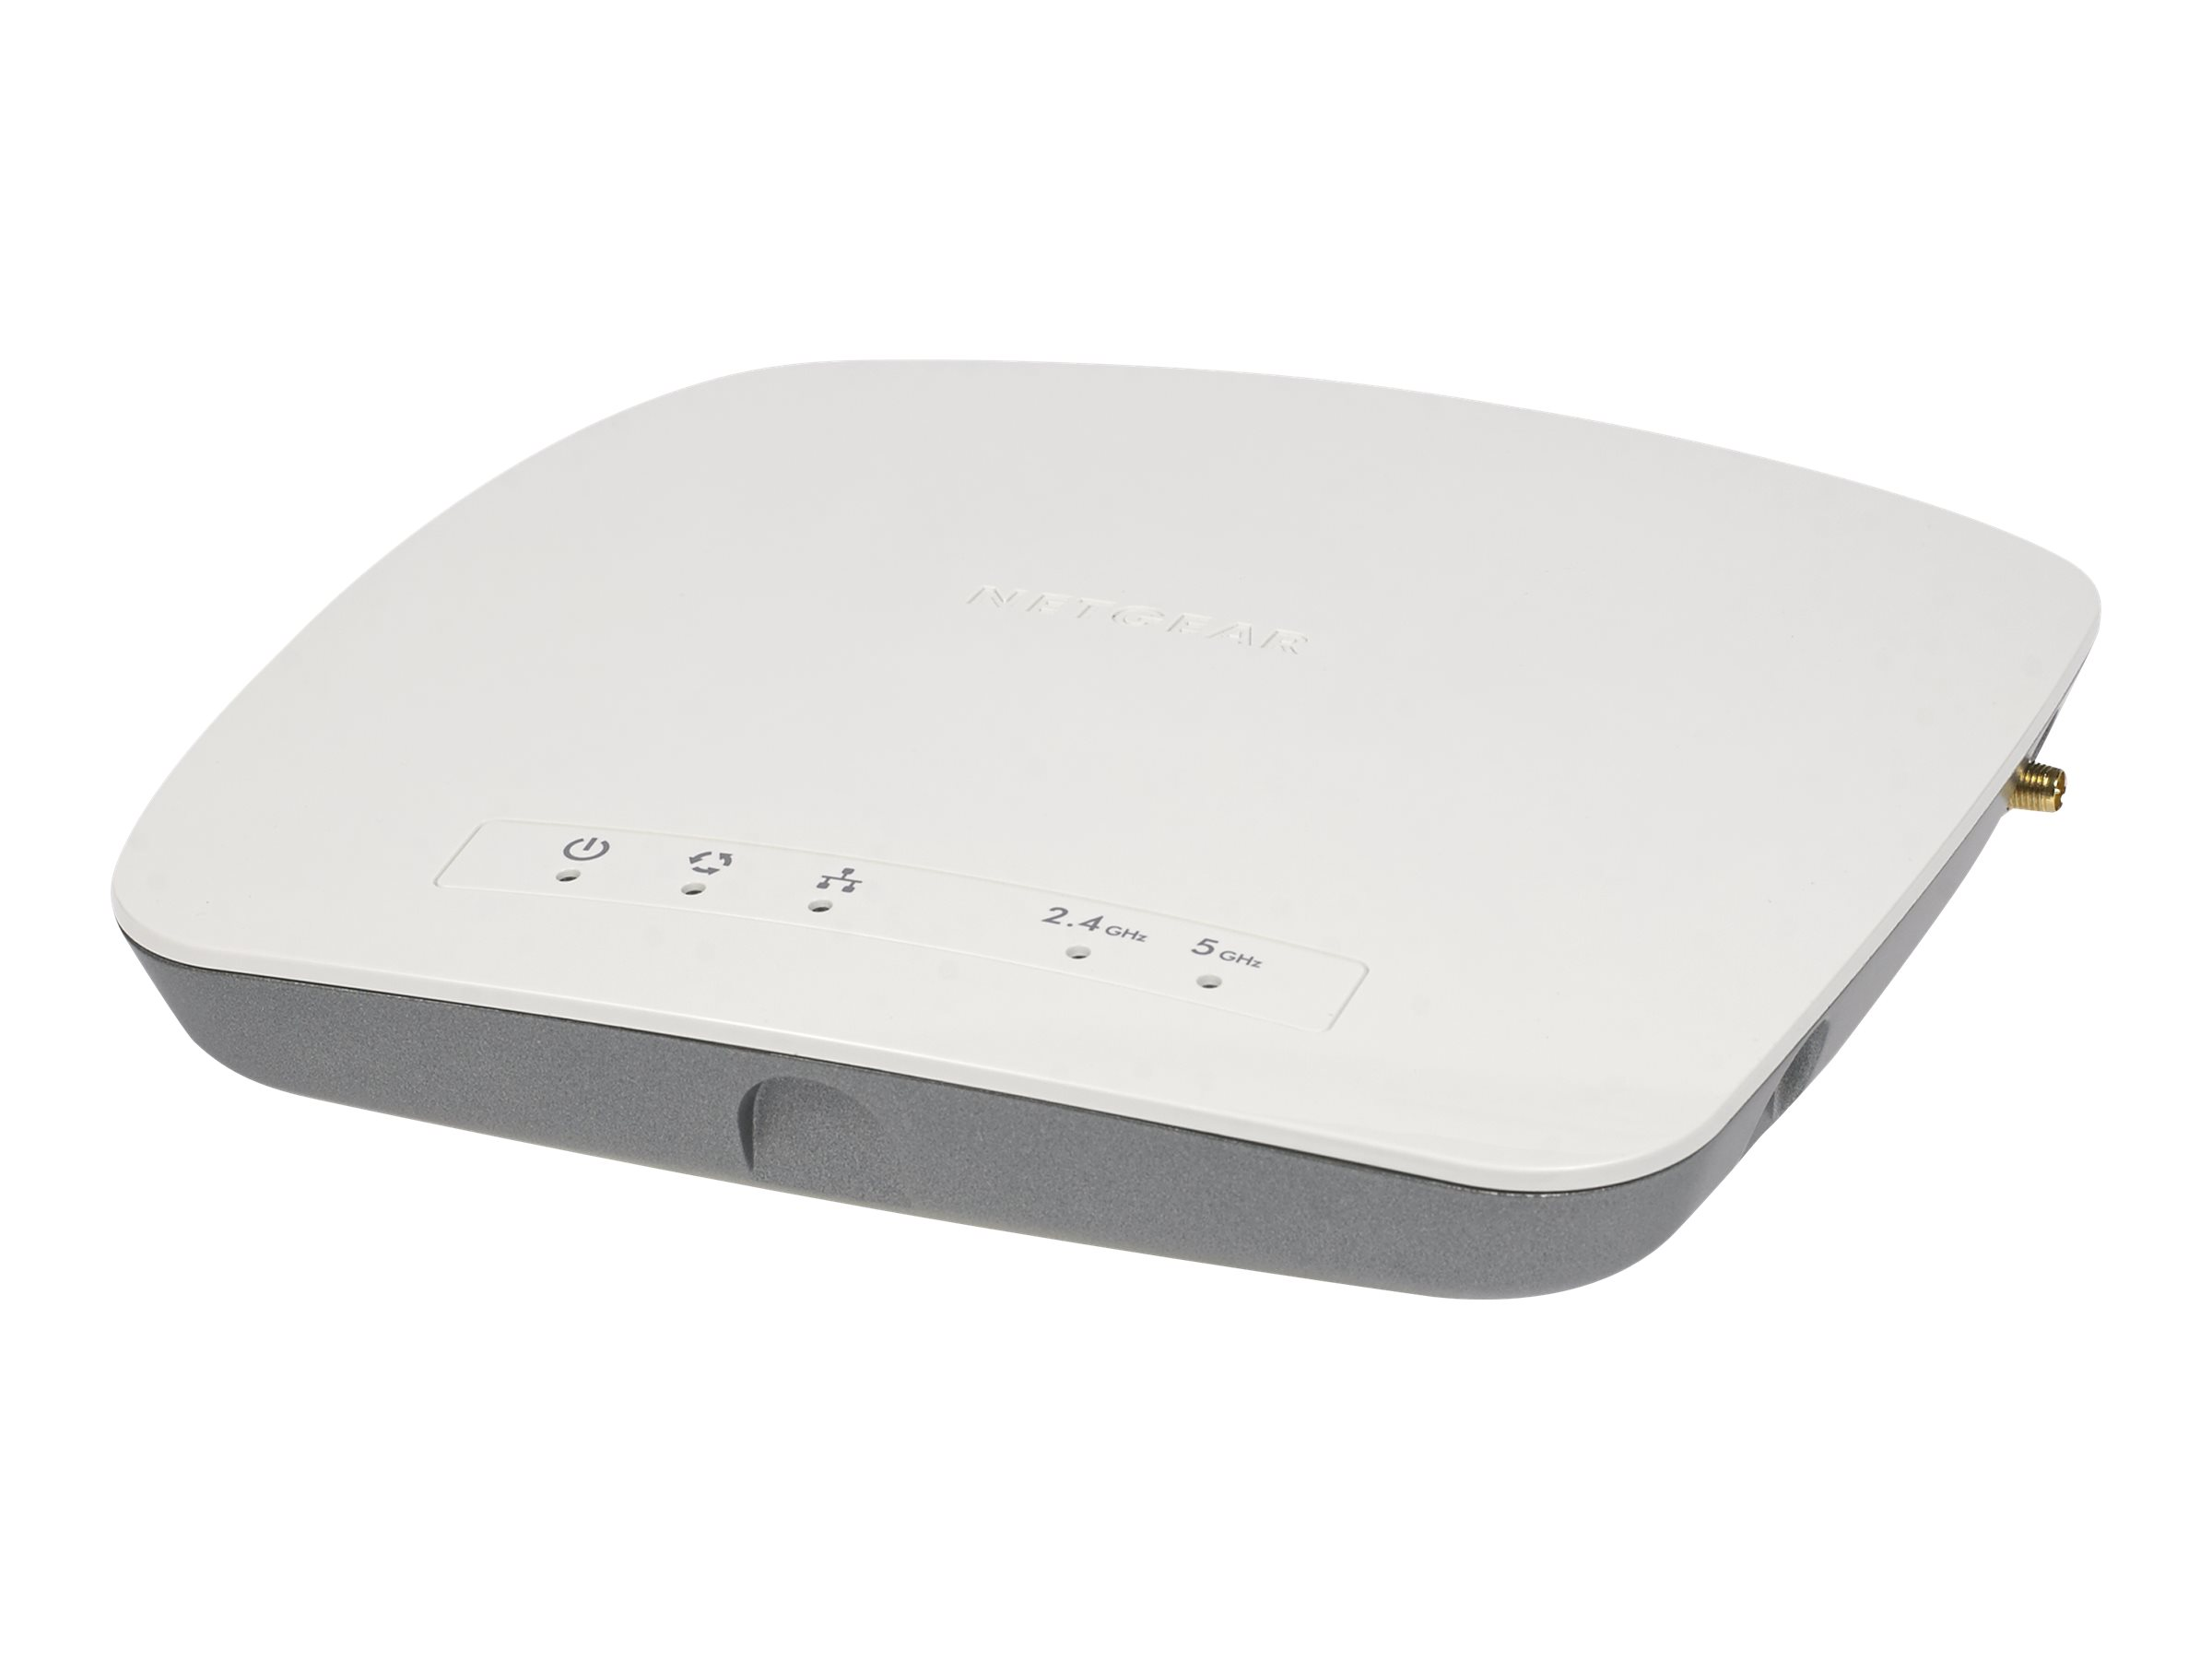 NETGEAR Business 2 x 2 Dual Band Wireless-AC Access Point WAC720 - wireless access point